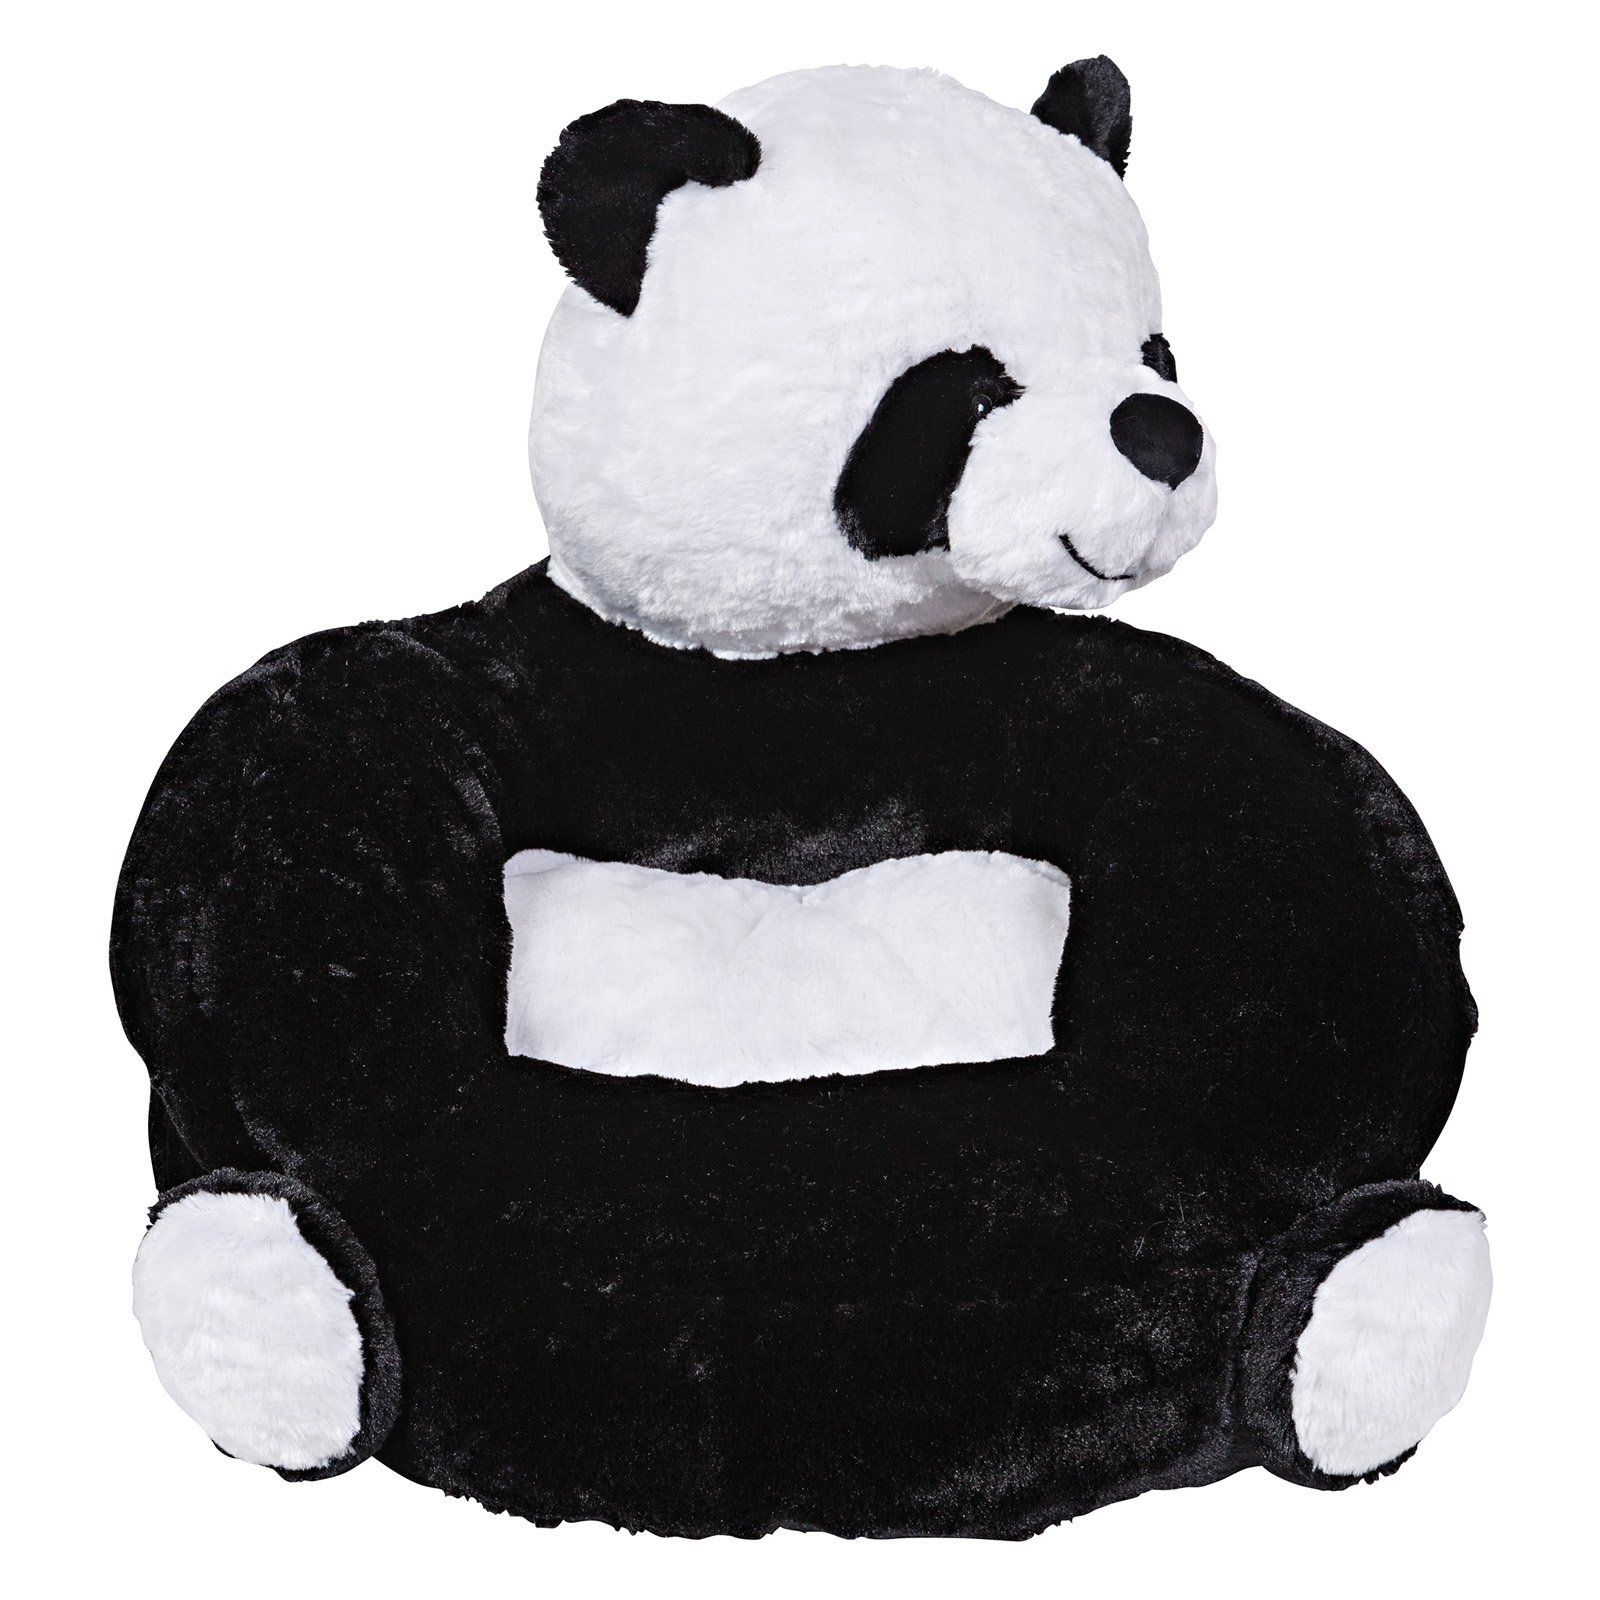 Stupendous Childrens Plush Panda Character Chair By Trend Lab Gmtry Best Dining Table And Chair Ideas Images Gmtryco